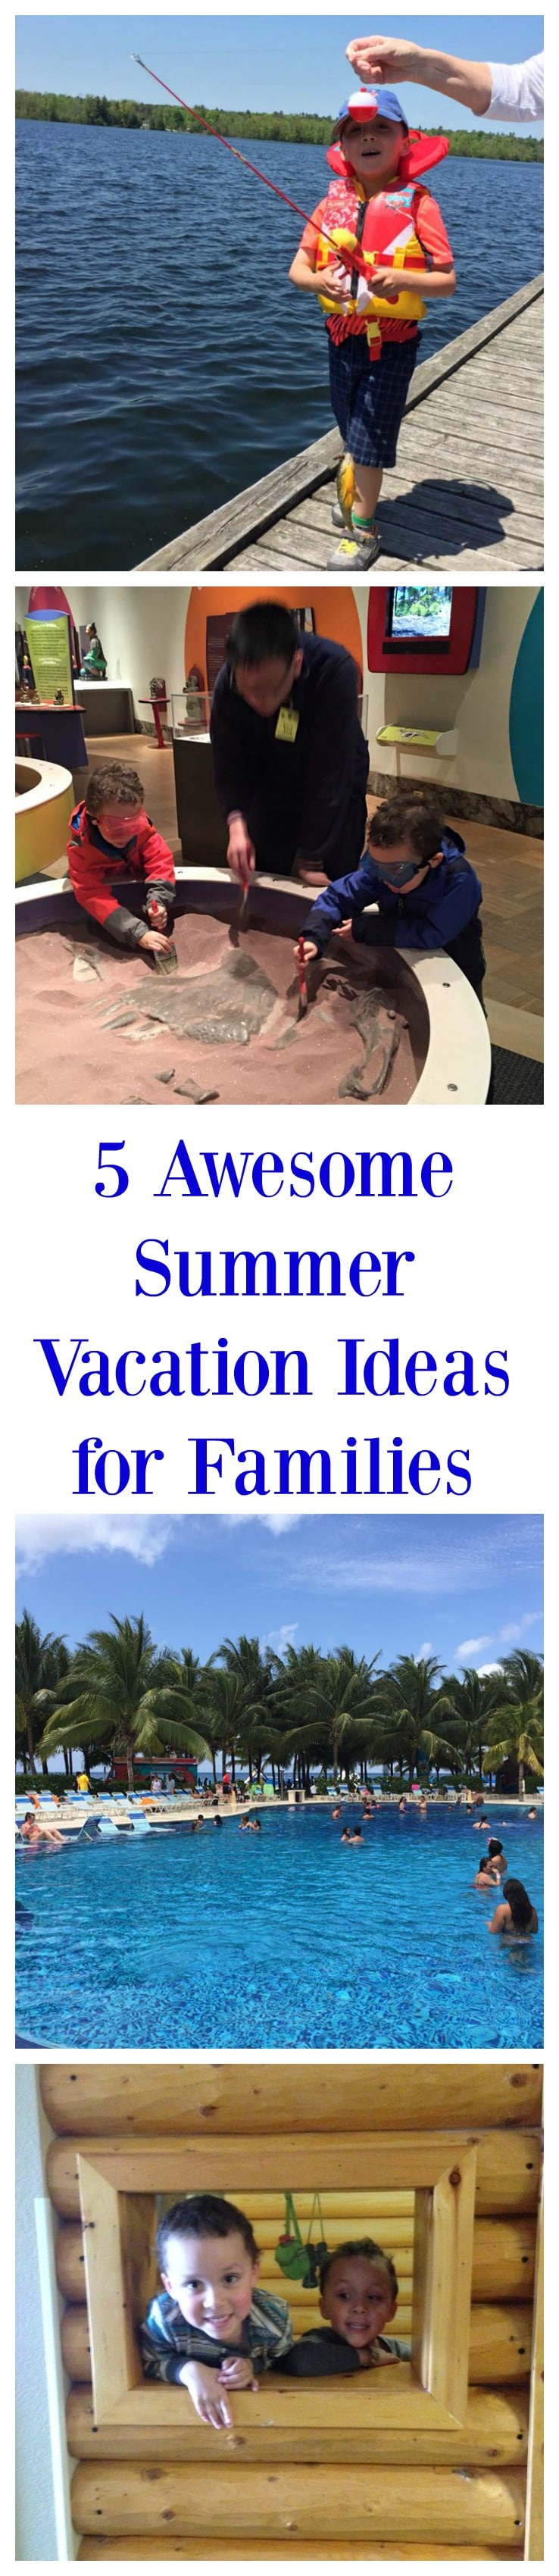 Family Summer Vacation Ideas